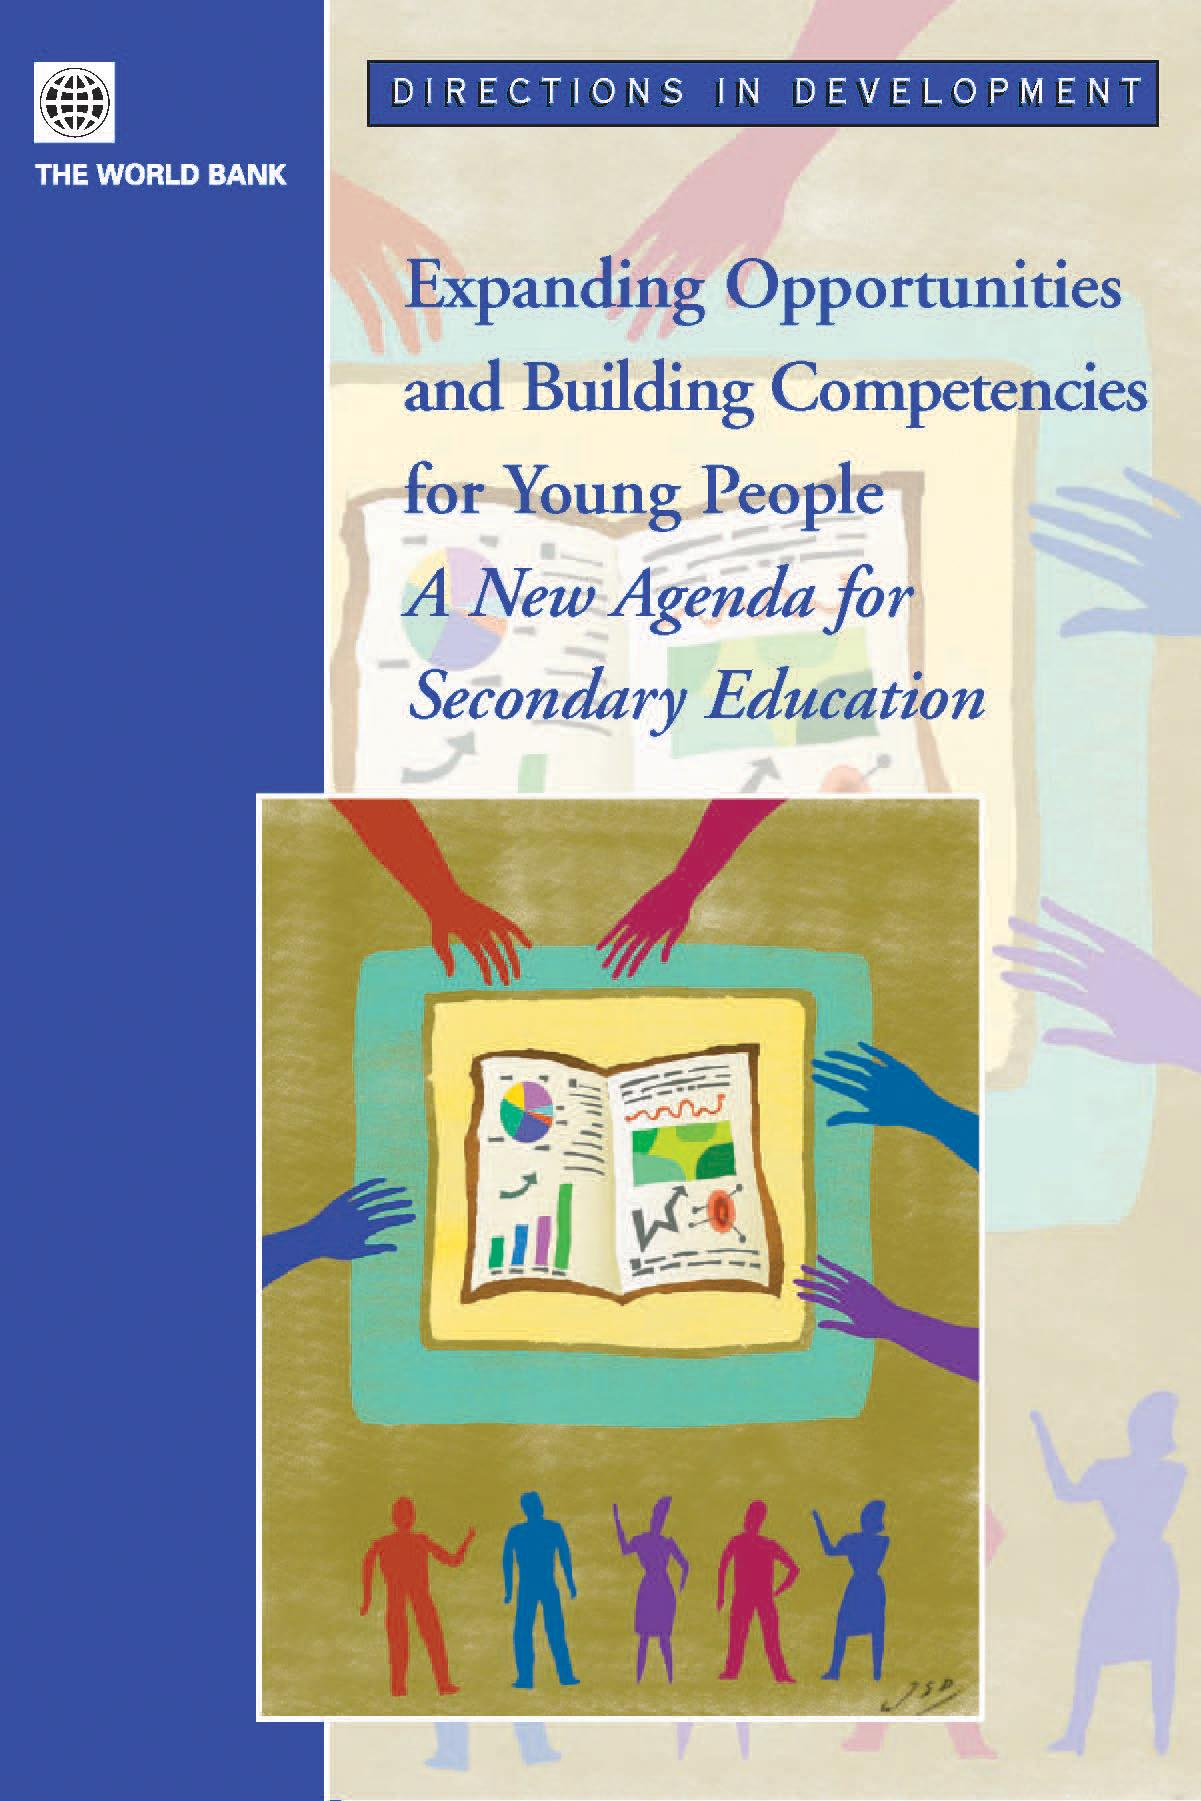 Expanding Opportunities and Building Competencies for Young People: A New Agenda for Secondary Education EB9780821361696